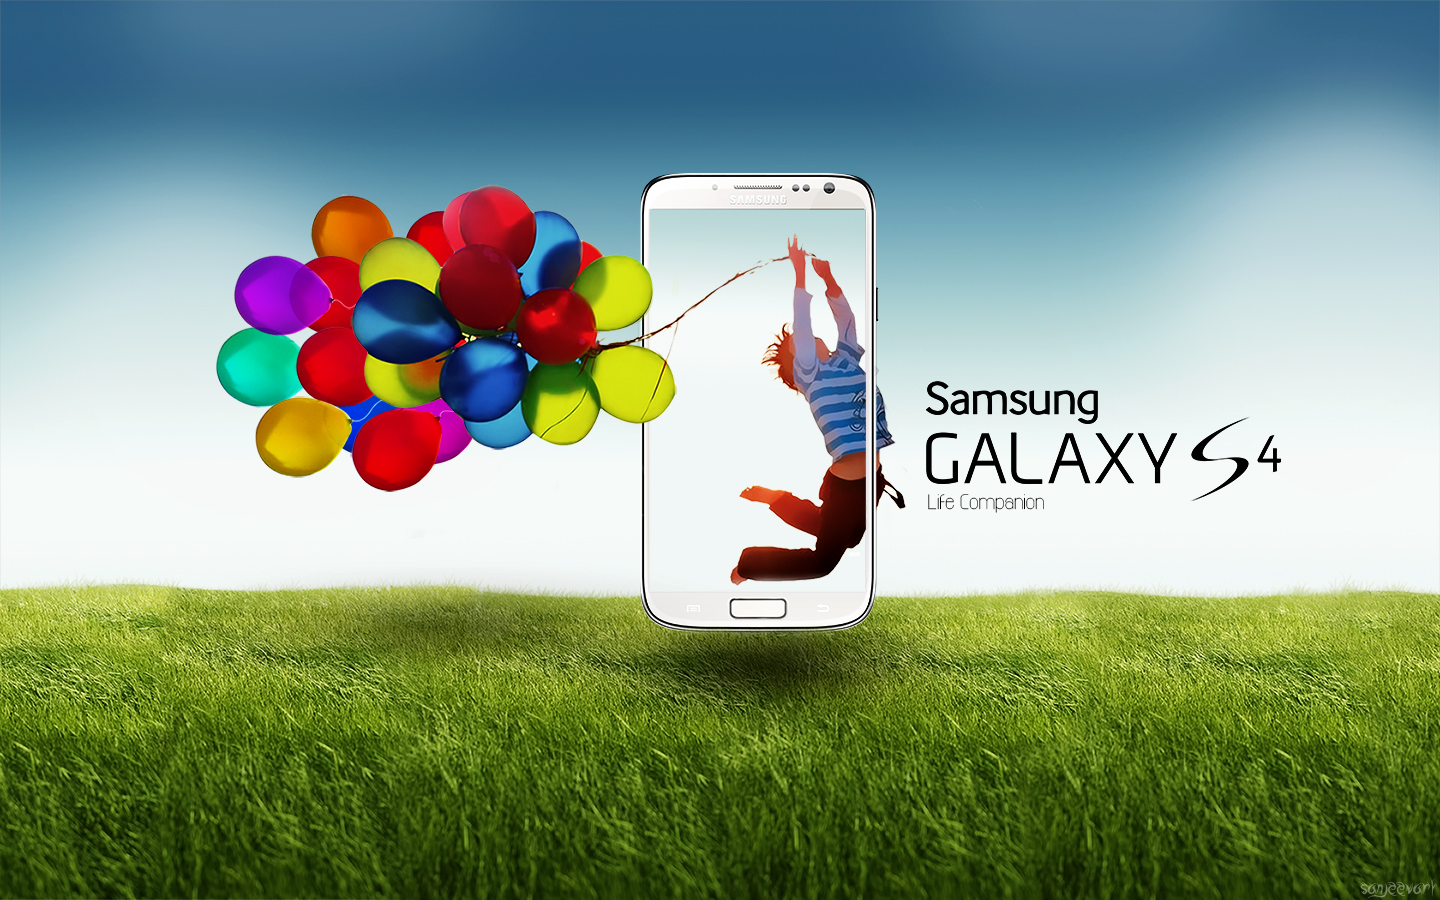 Samsung Galaxy Y Hd Love Wallpaper : Samsung Galaxy S4 Wallpaper by sanjeev18 on DeviantArt